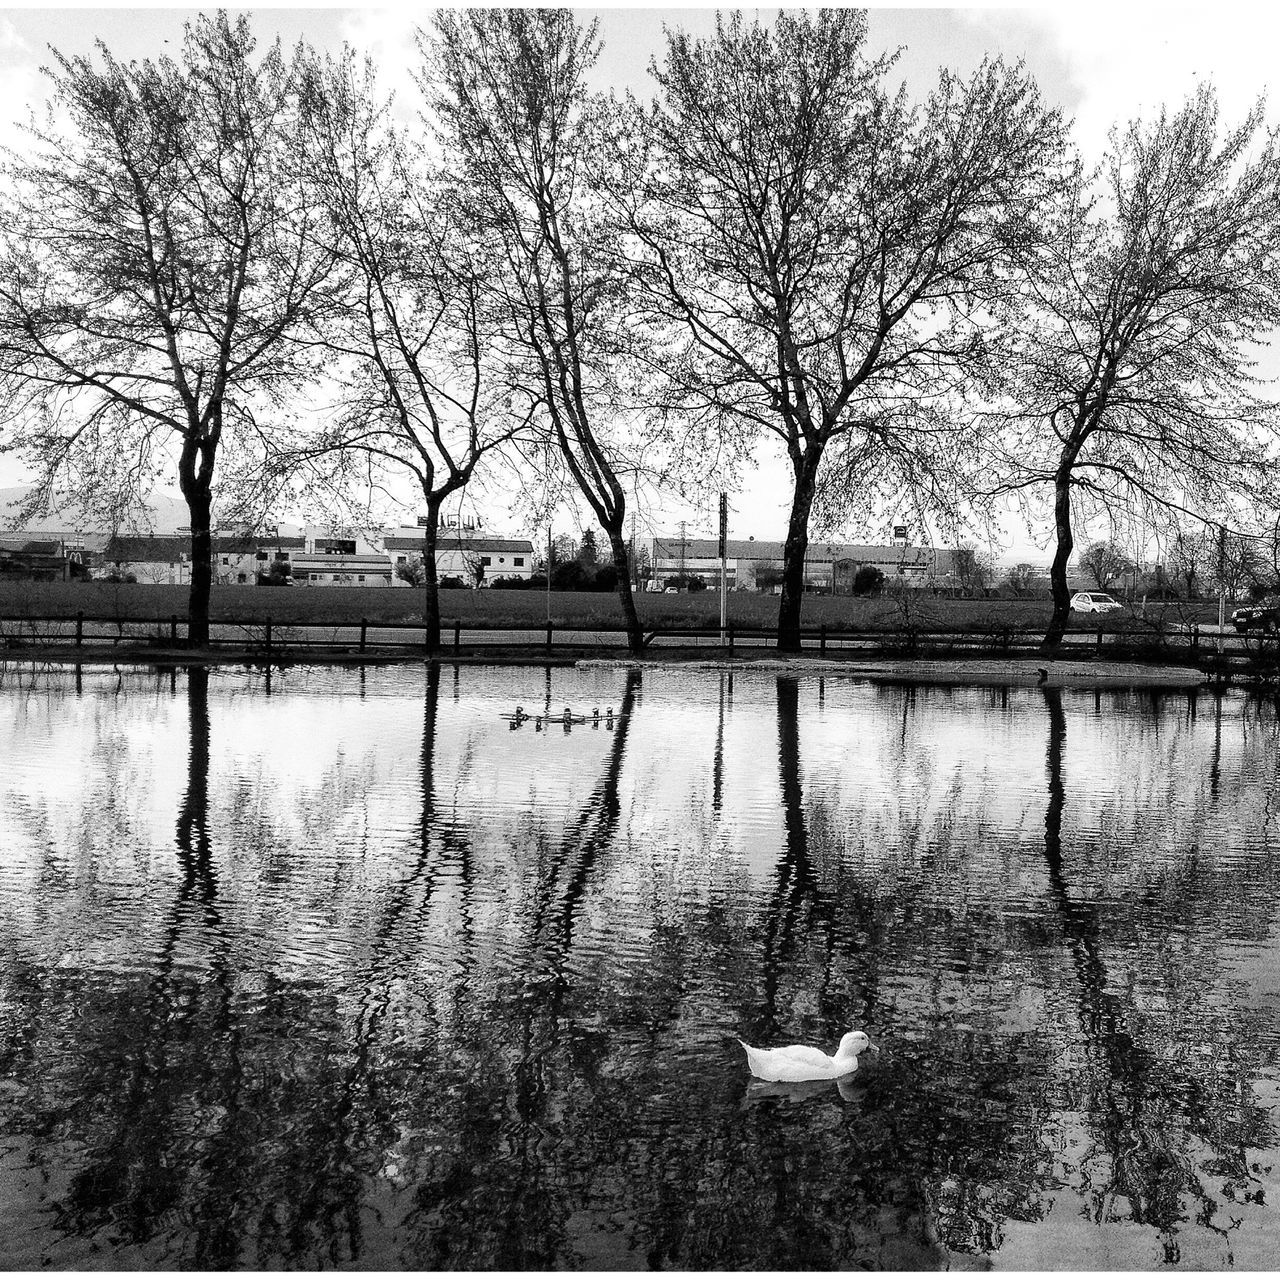 #barcelona #catalunya #cataluña #catalonia #spain #picoftheday #iphone4s #iphonography #dom365 #domfernandez Duck Ducks Paisaje Onepicaday Catalonia Nature_collection Ruralphotography SPAIN Trees Domfernandez Monochrome Blackandwhite B&w